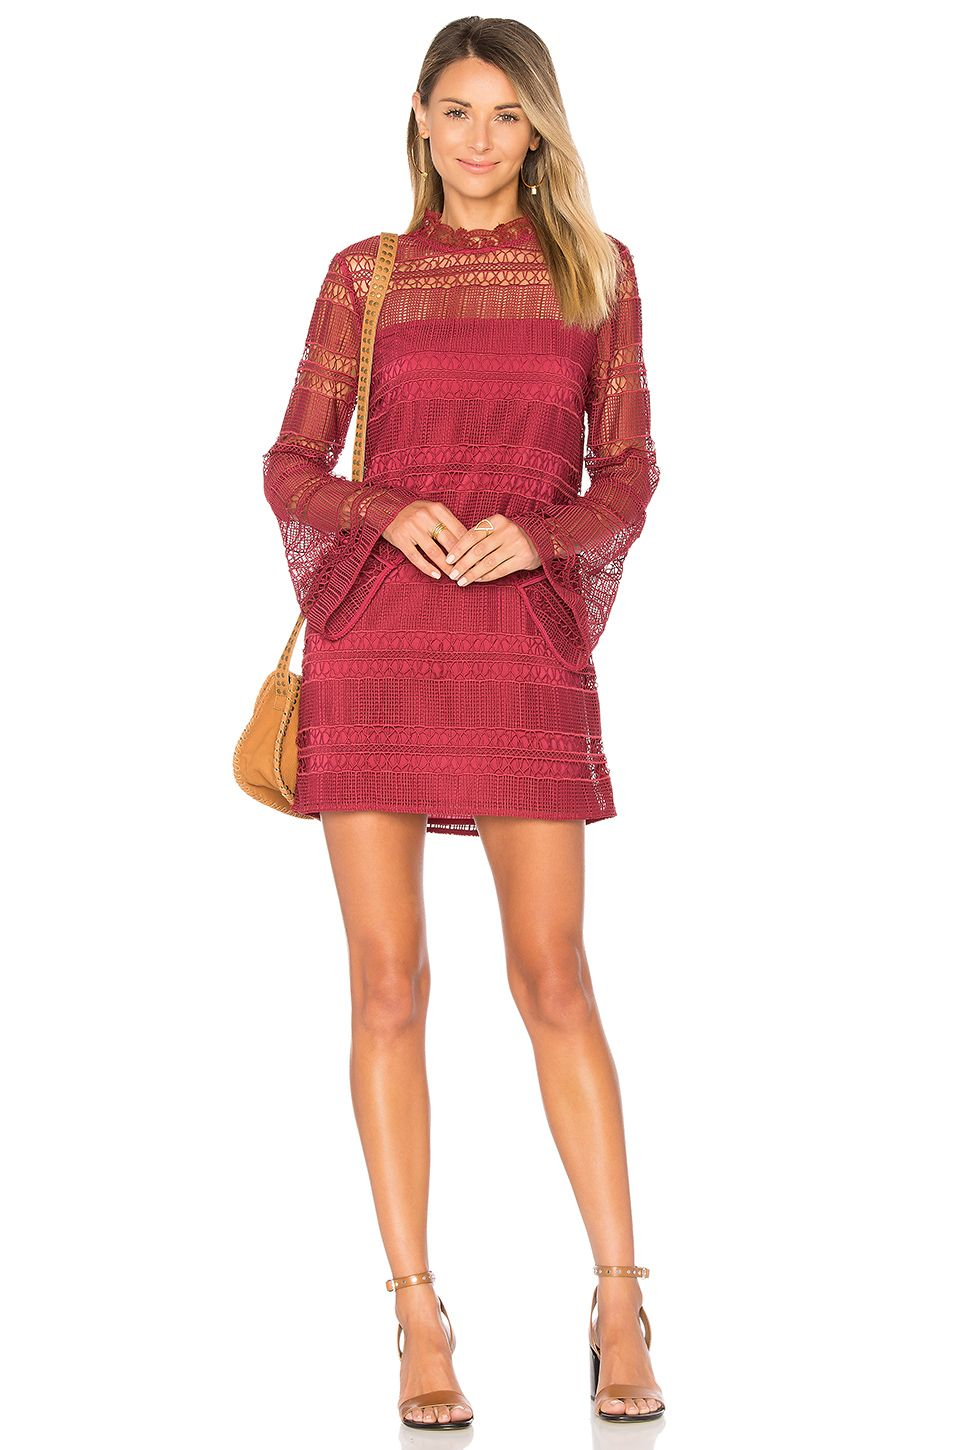 Tularosa matilda lace dress in dusted berry revolve yes to the